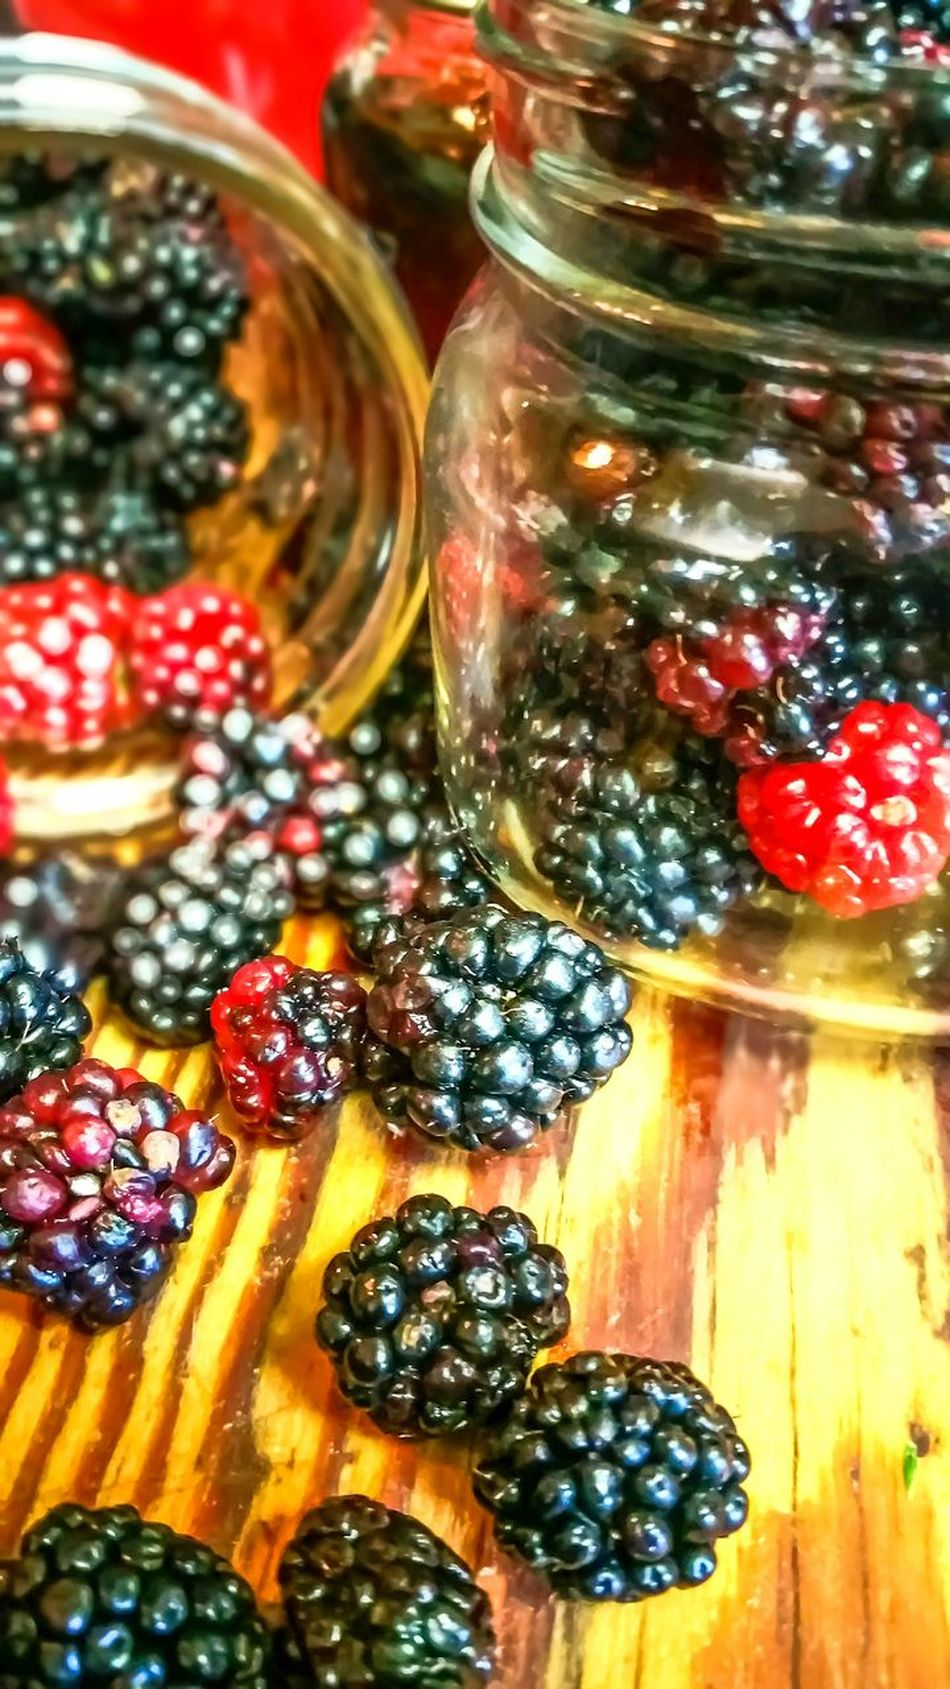 Food Fruit Blueberry Jar Food And Drink Healthy Eating Freshness Indoors  Sweet Food Red Homemade No People Close-up Day Dew Berries Black Berries Berries Jelly Cooking Fresh Fruits Canning Wild Berries Fresh Making Jam Table